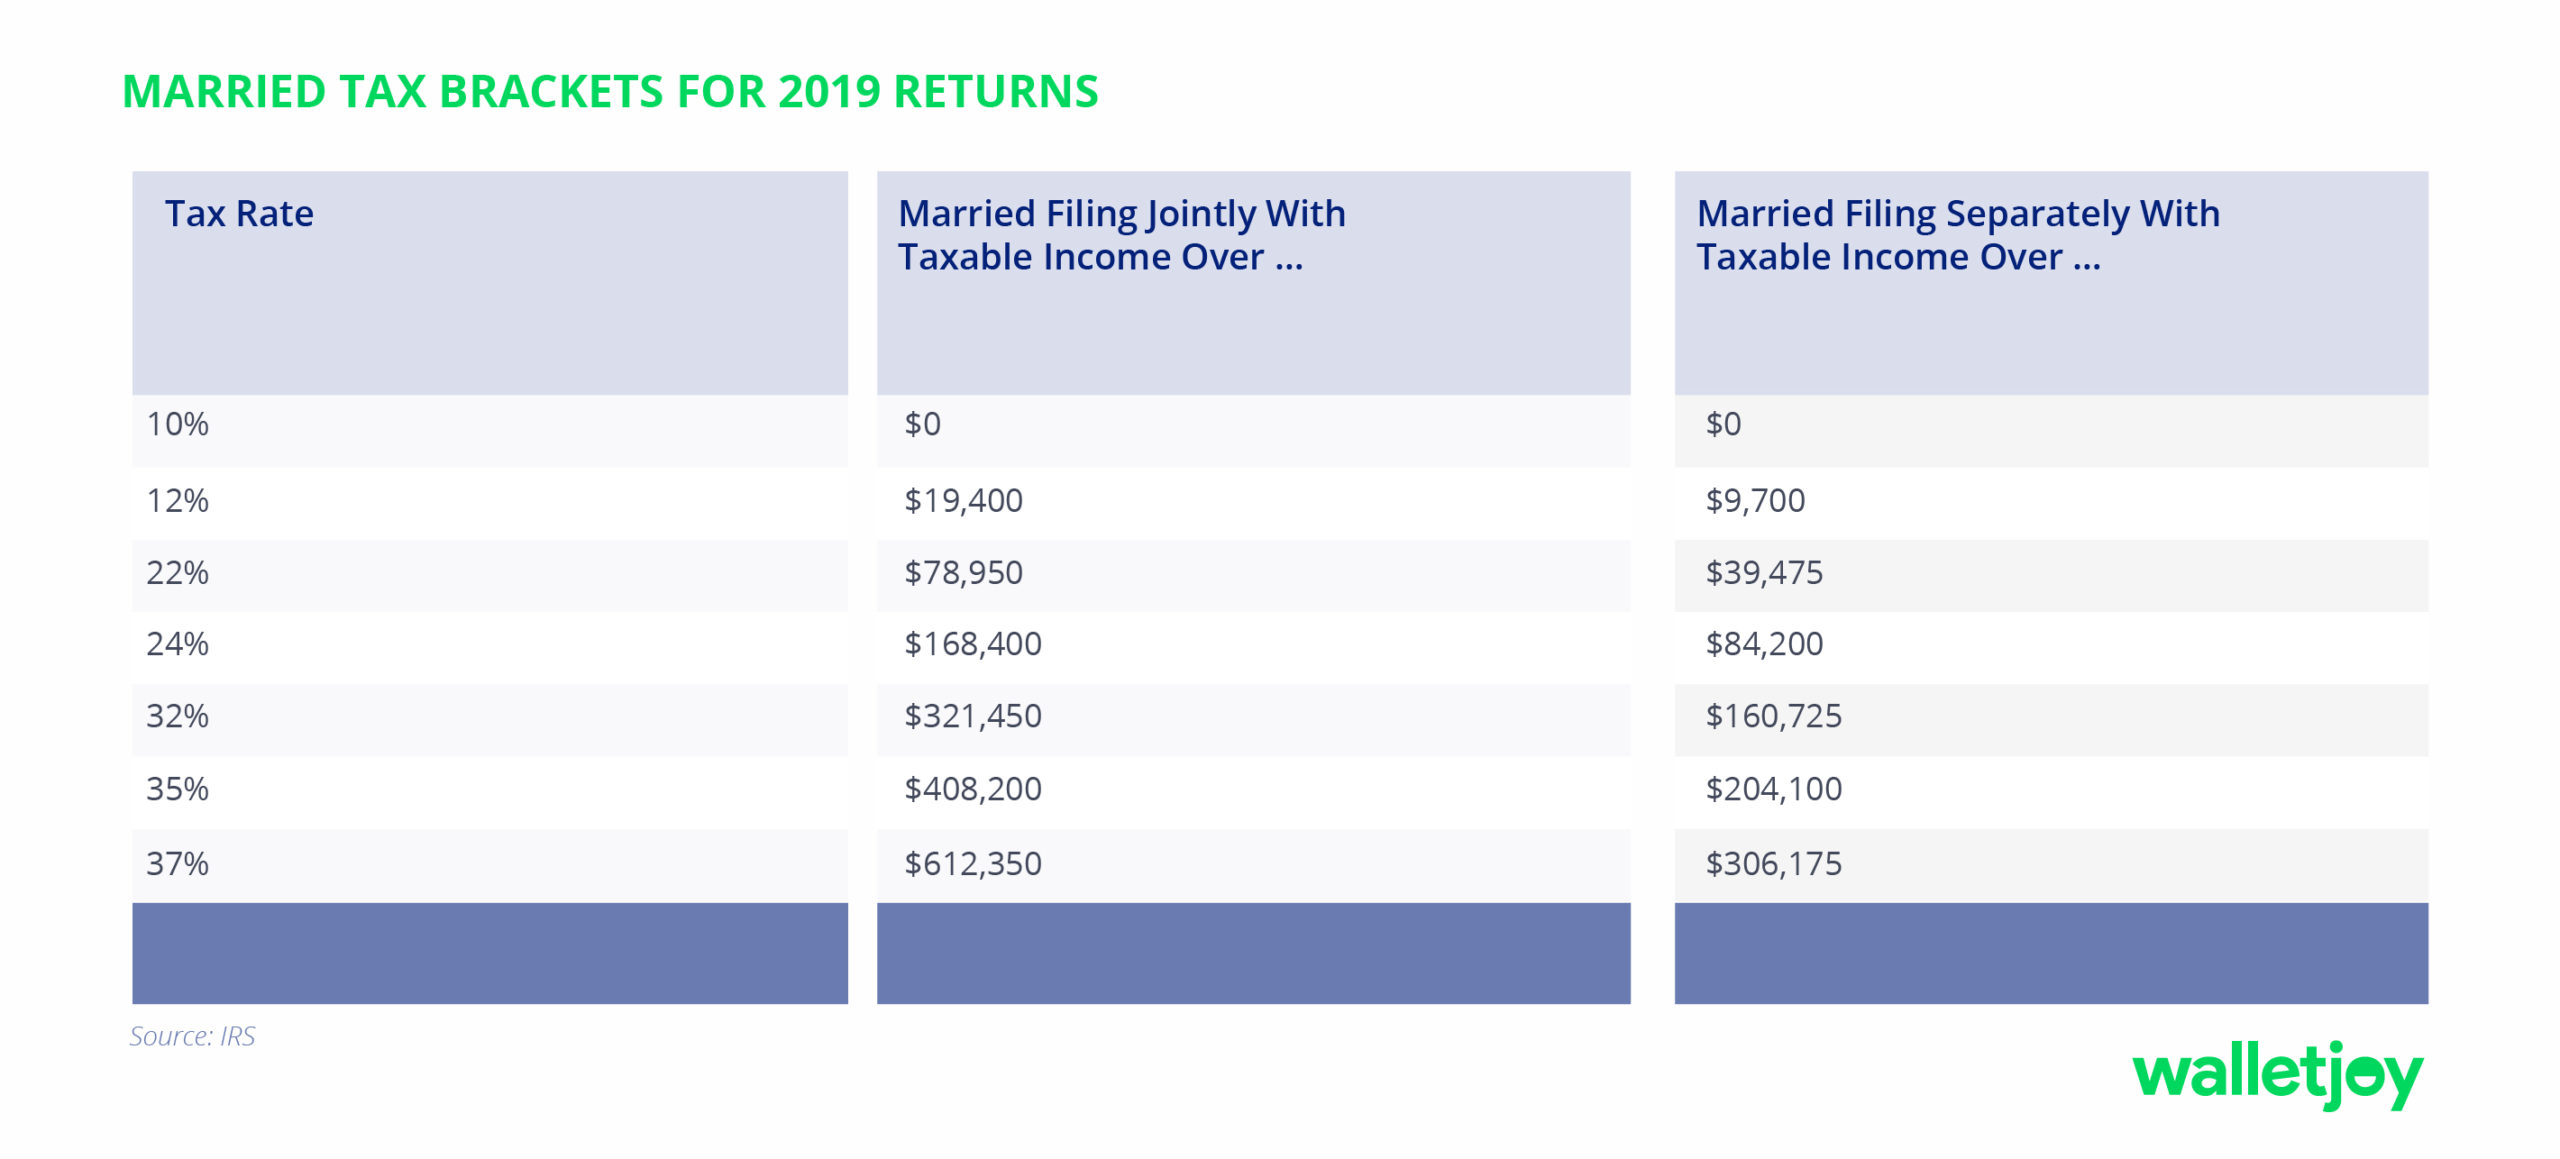 2019 tax brackets for married couples